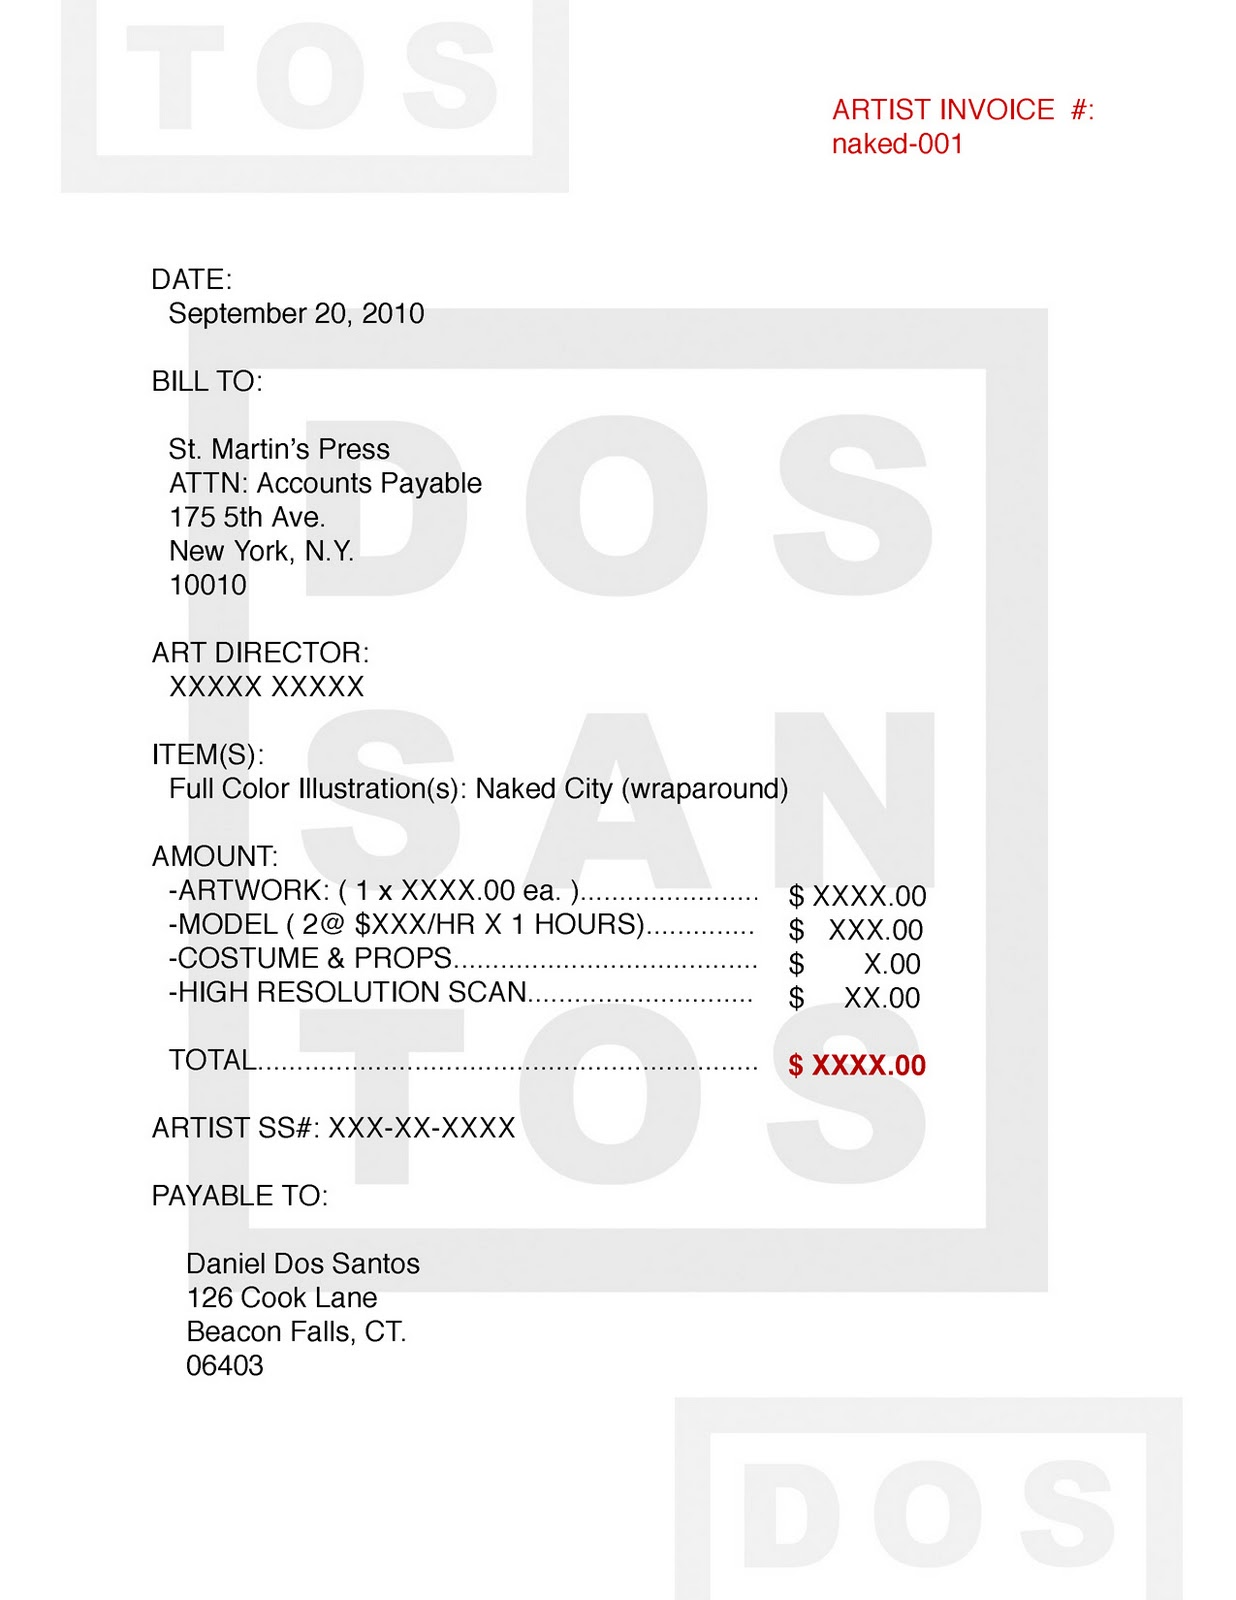 Aaaaeroincus  Winsome Muddy Colors Invoices With Remarkable I Believe That This Format Contains All The Pertinent Information That A Good Invoice Should Have And Can Serve As A Decent Template For Your Own With Awesome Acknowledge Email Receipt Also Forwarder Certificate Of Receipt In Addition Quiche Receipts And Receipt Car Sale As Well As Shop And Scan Till Receipts Additionally Sample Letter Of Acknowledgement Receipt Of Payment From Muddycolorsblogspotcom With Aaaaeroincus  Remarkable Muddy Colors Invoices With Awesome I Believe That This Format Contains All The Pertinent Information That A Good Invoice Should Have And Can Serve As A Decent Template For Your Own And Winsome Acknowledge Email Receipt Also Forwarder Certificate Of Receipt In Addition Quiche Receipts From Muddycolorsblogspotcom